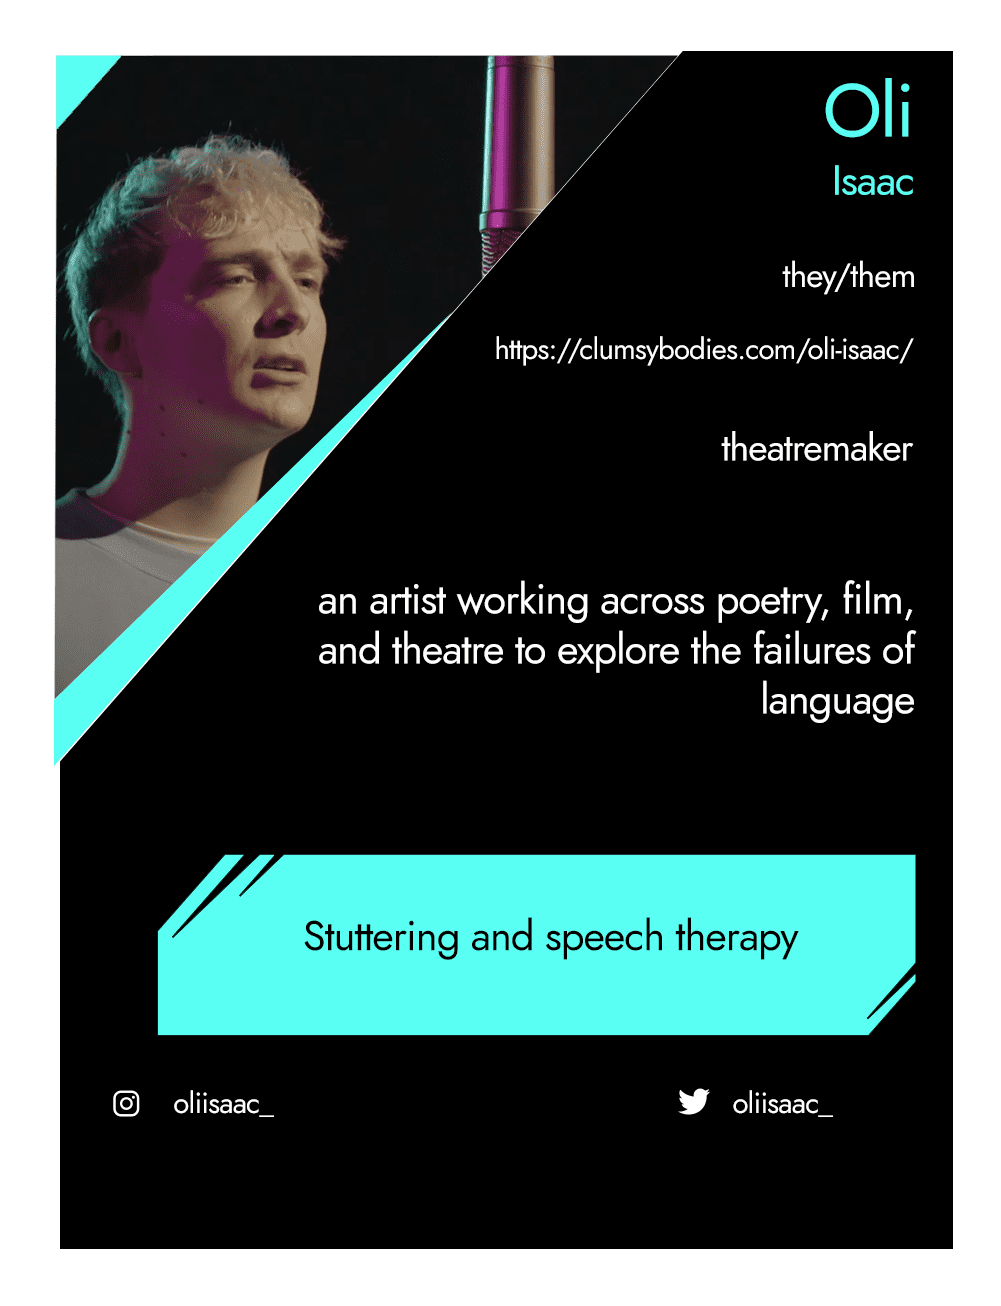 This is the front of an artist announcement card for Oli. The design is styled on an American baseball card. The card has a thin white border and the rest of the card is black with turquoise accents. On the left hand corner, there is a triangular cross section of a photo of Oli. In it, Oli - a white non-binary person - has bleached hair and is dressed in a light blue jumper that reads 'kind human.' Oli stands in the foreground next to a microphone that is hanging from the ceiling. They have a focused expression and their mouth is slightly open. To the right of the photo, there is the artist's name, Oli, pronouns, they/them, website, clumsybodies.com/oli-isaac/, and artistic practice, theatremaker. Below this is a short artist biography, which reads an artist working across poetry, film, and theatre to explore the failures of language. In a turquoise rectangle below this, the card highlights what the artist's role is within CRIPtic. For Oli this reads stuttering and speech therapy. Below this are the artist's social media handles @oliisaac_.